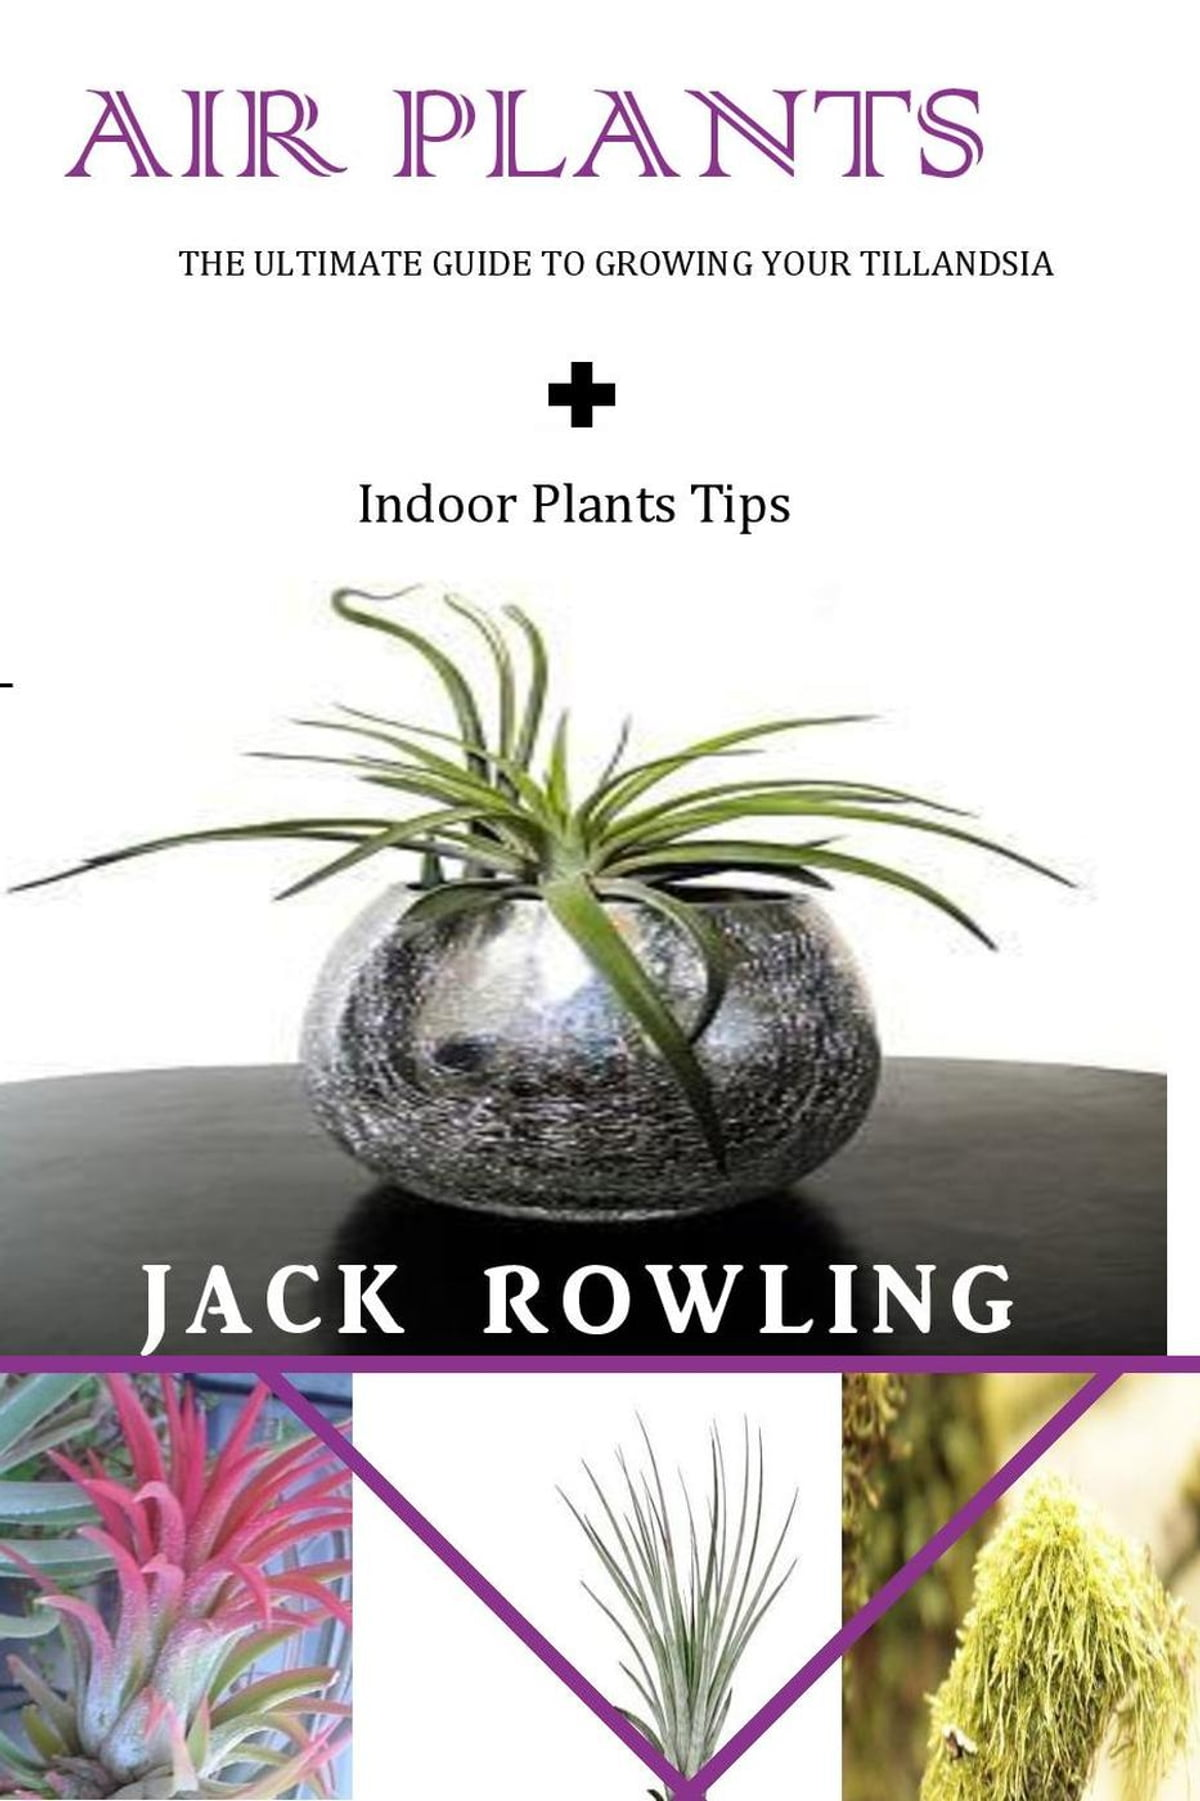 Air Plants The Ultimate Guide To Growing Your Tillandsia Indoor Tips Ebook By Jack Rowling 9781386193654 Rakuten Kobo